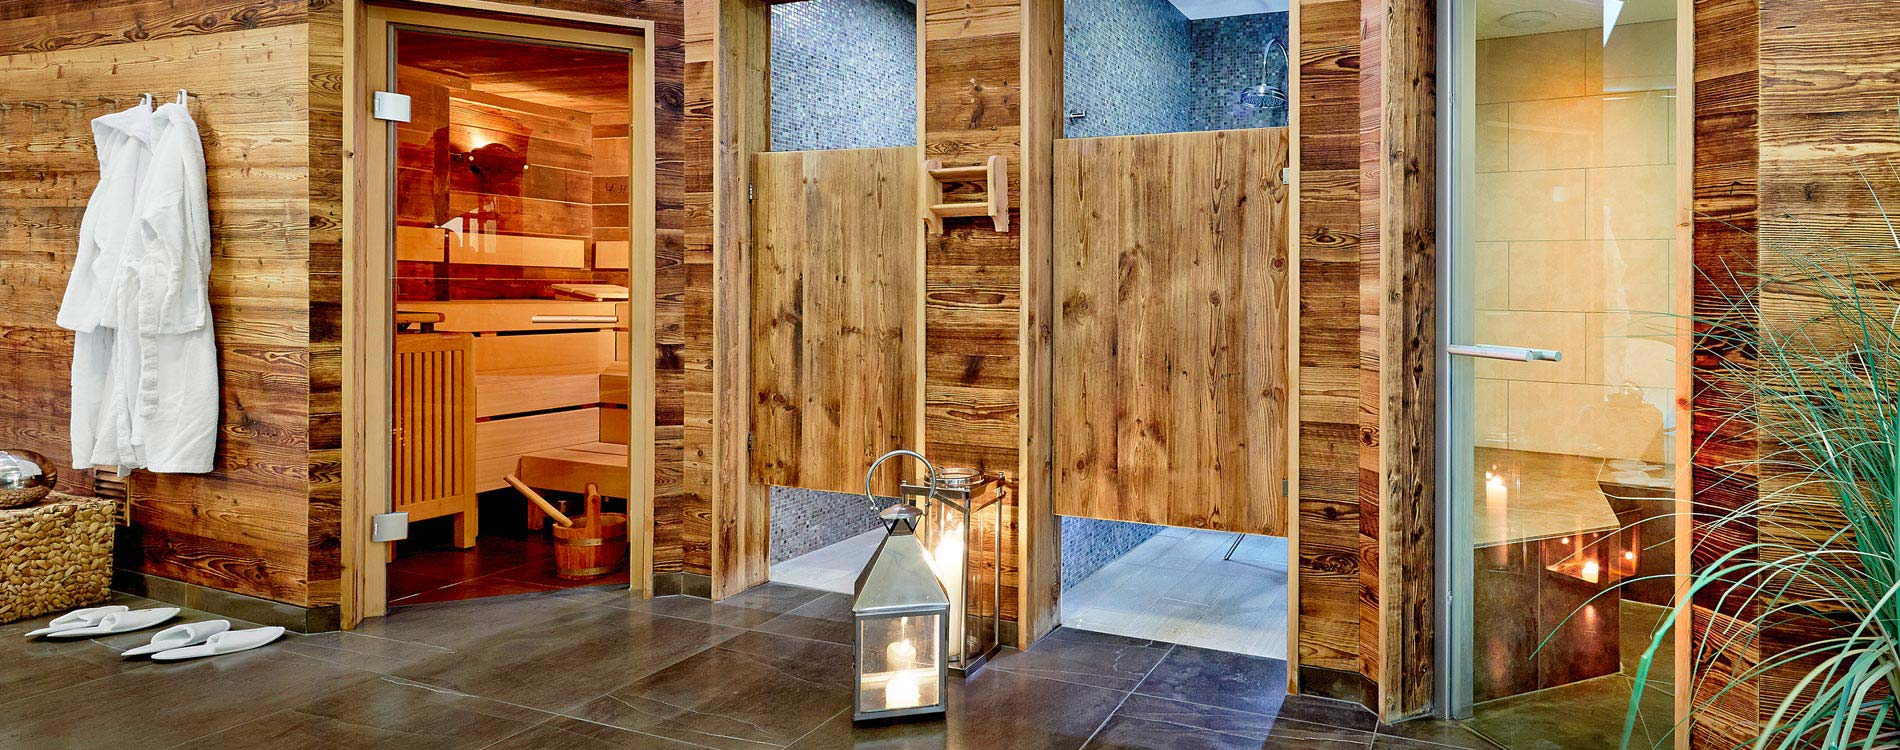 Spa break - Niche Destinations 4-star-superior hotel GROSSARLER HOF spa sauna